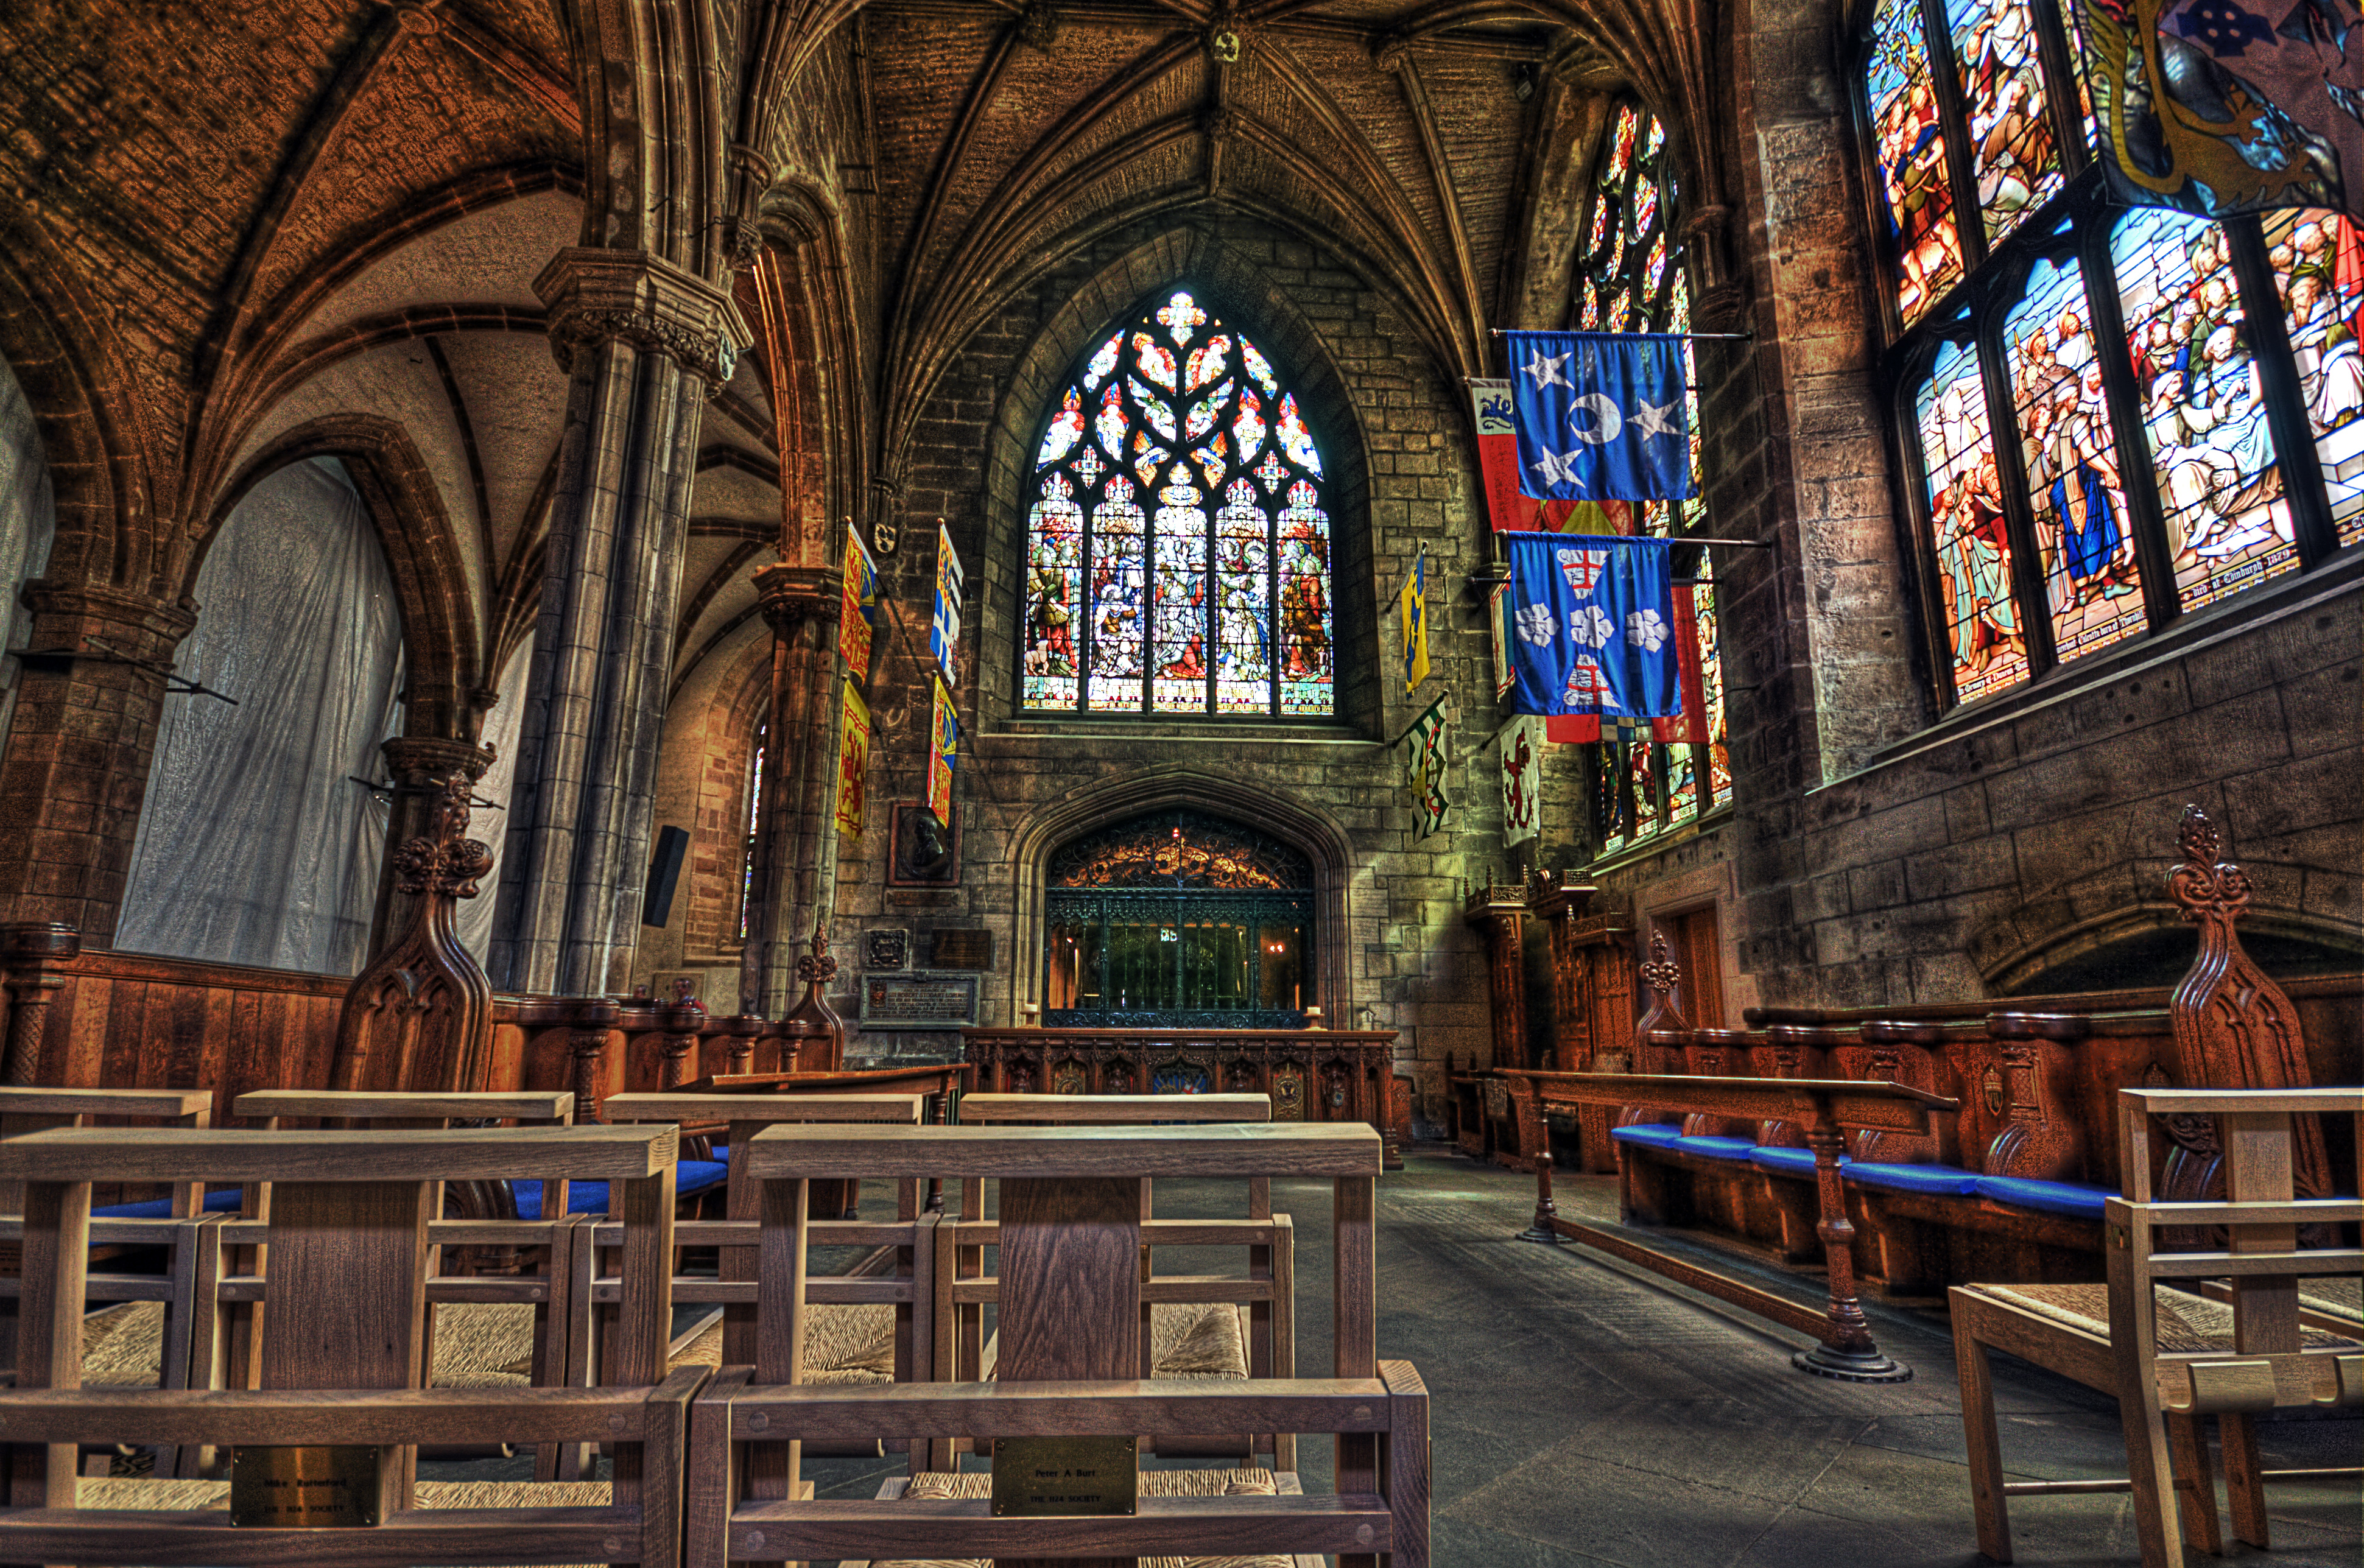 St.Giles Cathedral interior veiw